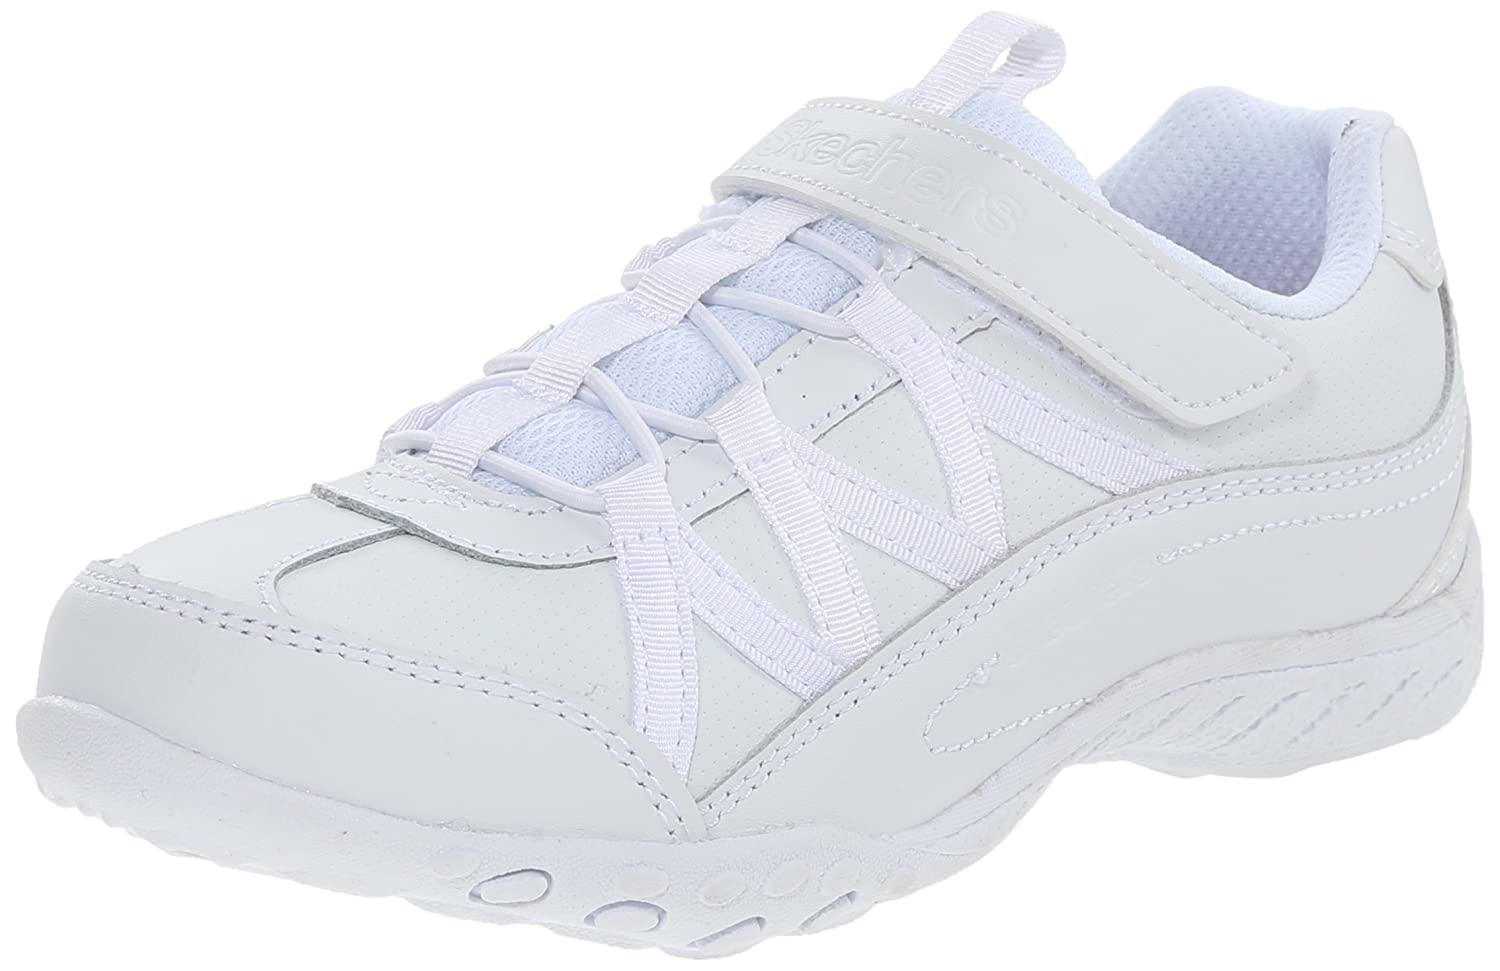 Skechers Kids Breathe-Easy-Fab Phonics School Uniform Shoe (Little Kid/Big Kid) 82298L